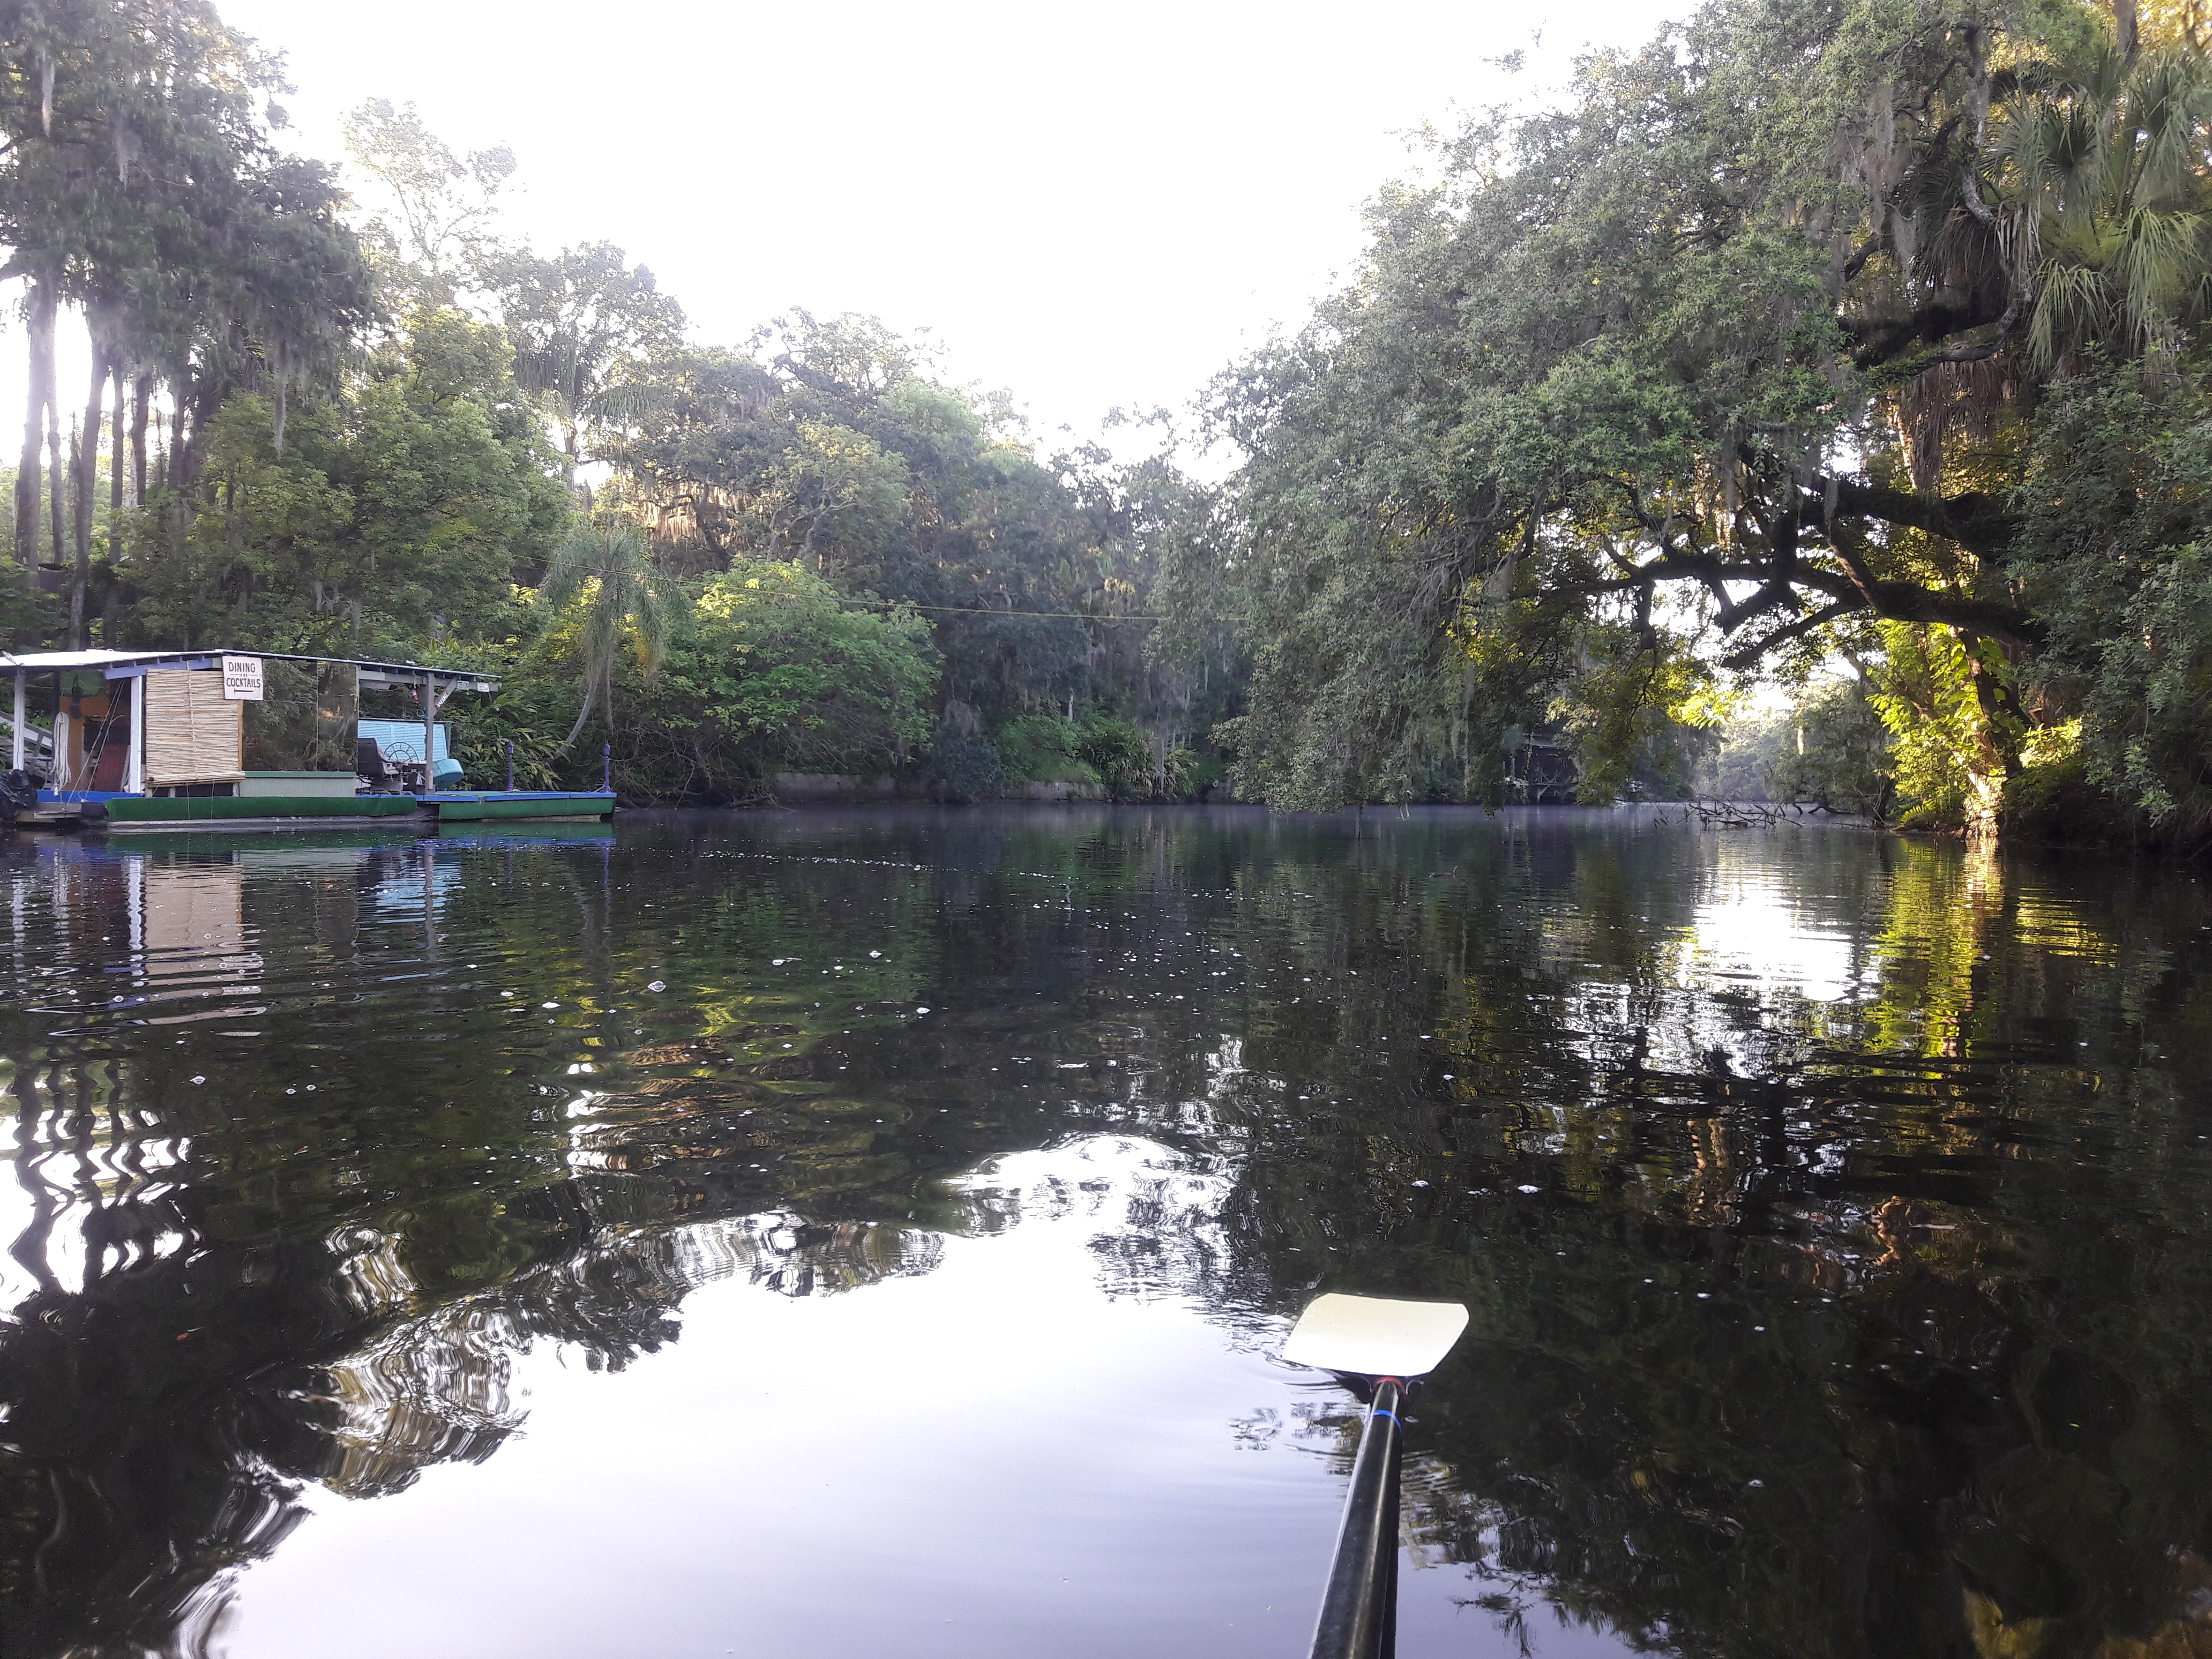 Drinks available 8 miles up river, 7/4/2017 7:22:00 AM